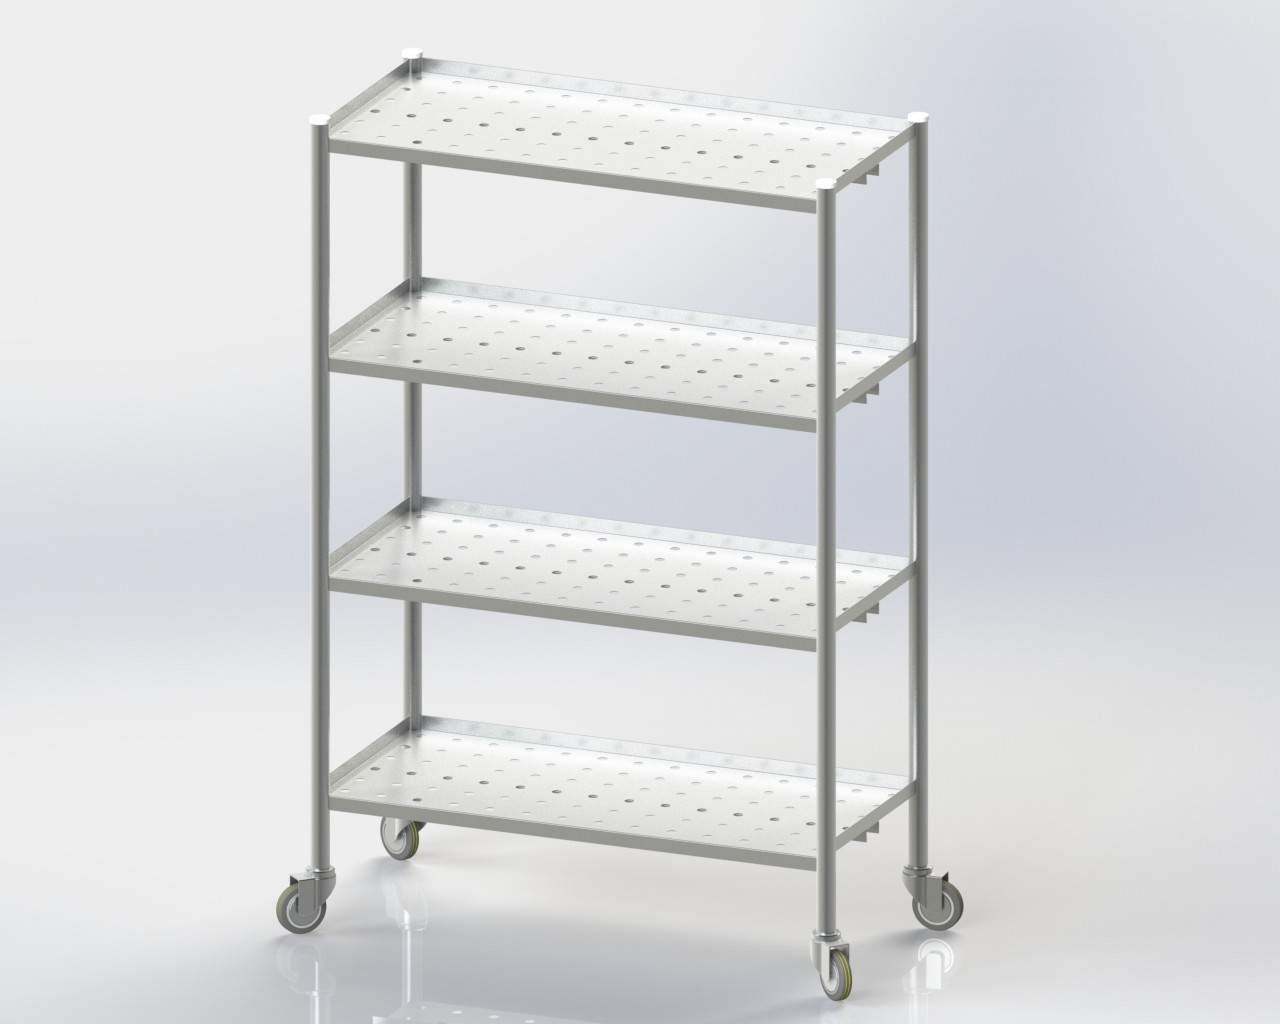 4 Perforated Storage Rack/Mobile